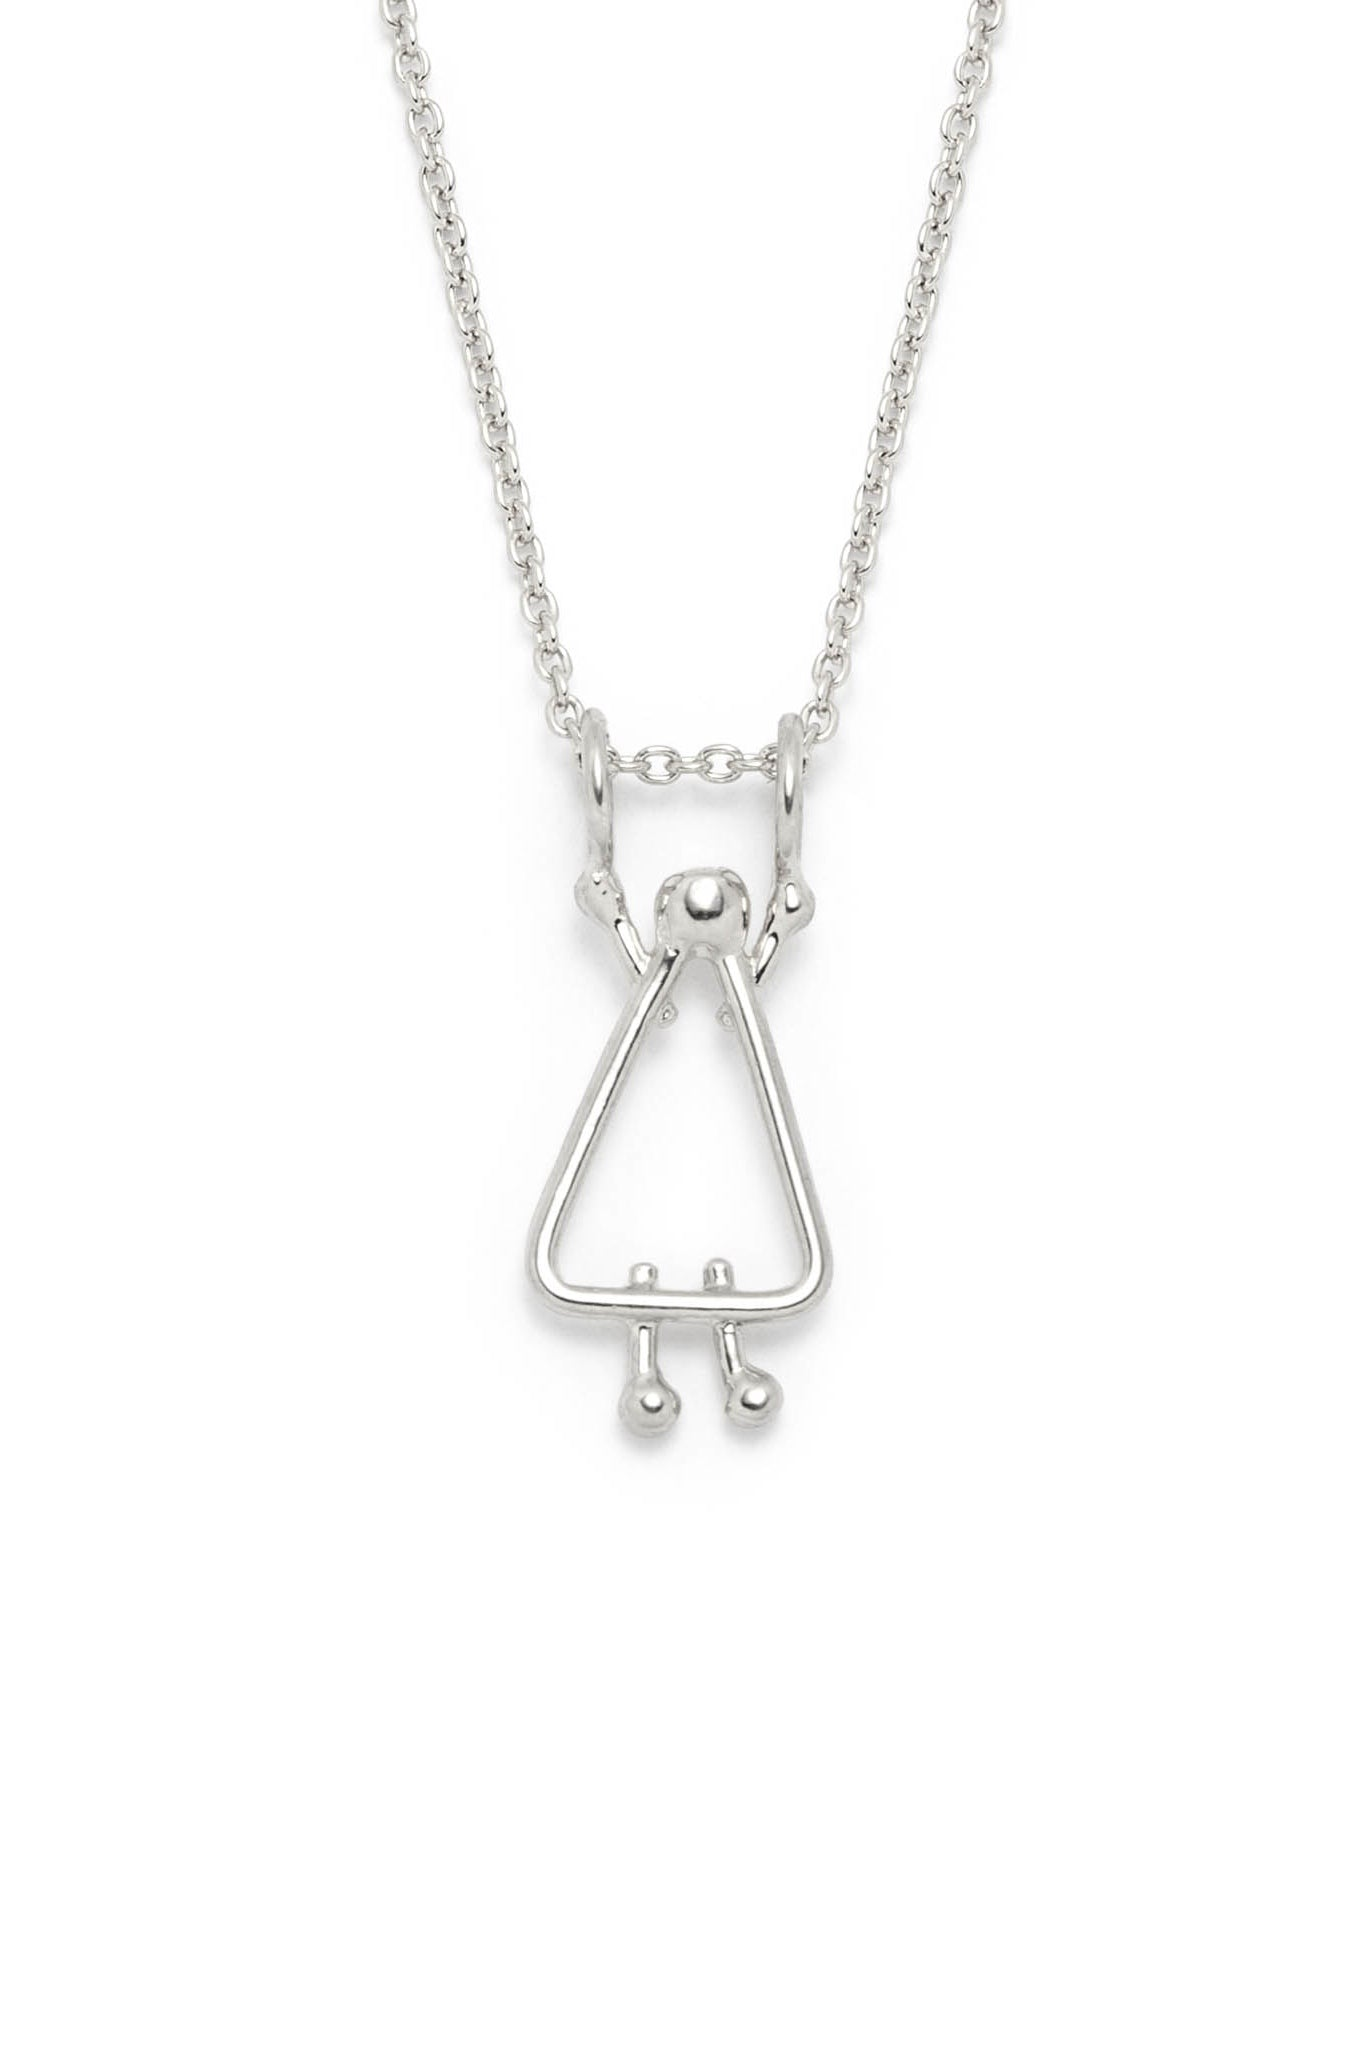 Mom charm on chain by Lidia in sterling silver